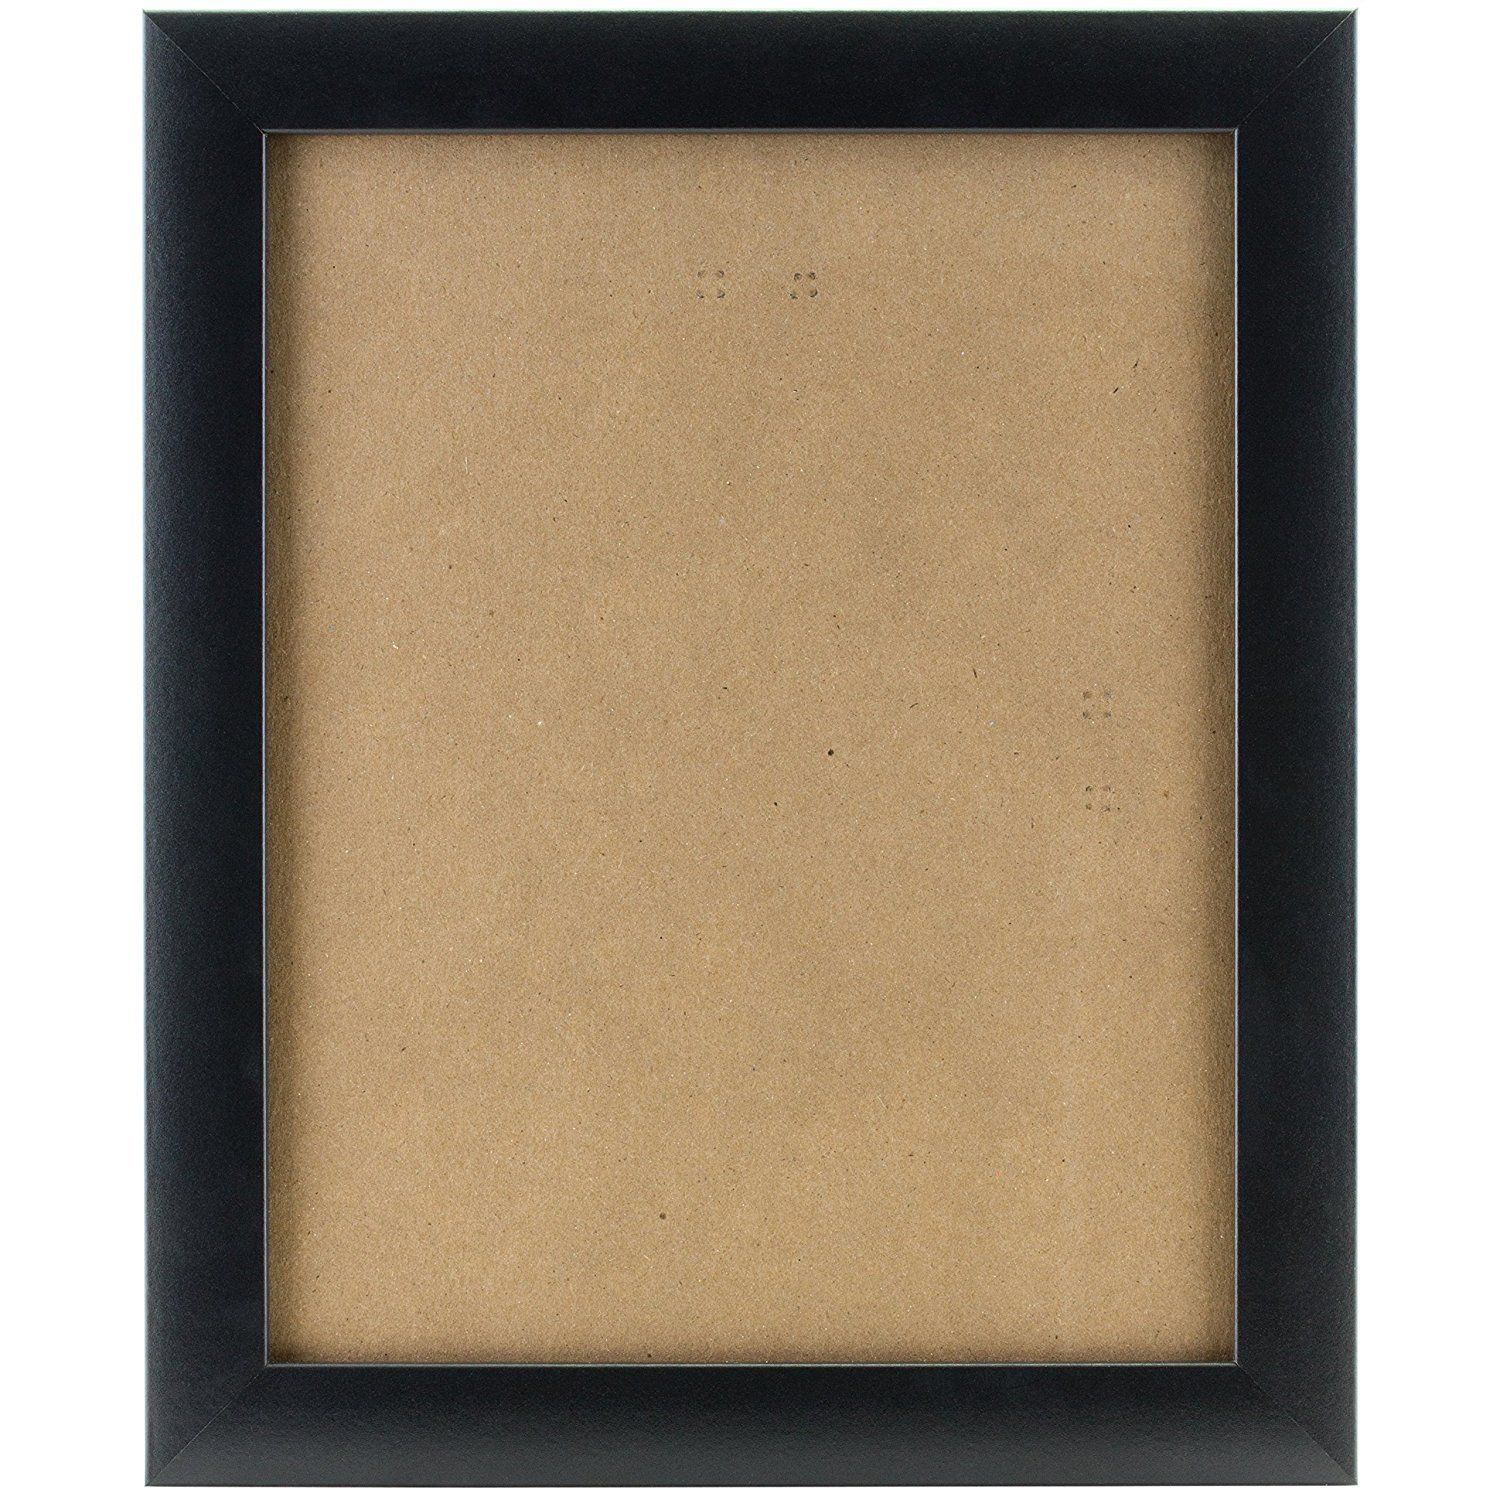 12 X 16 Picture Frame Wood Gold Trim Well Made In Usa New Etsy Frame Picture Frames Wood Frame